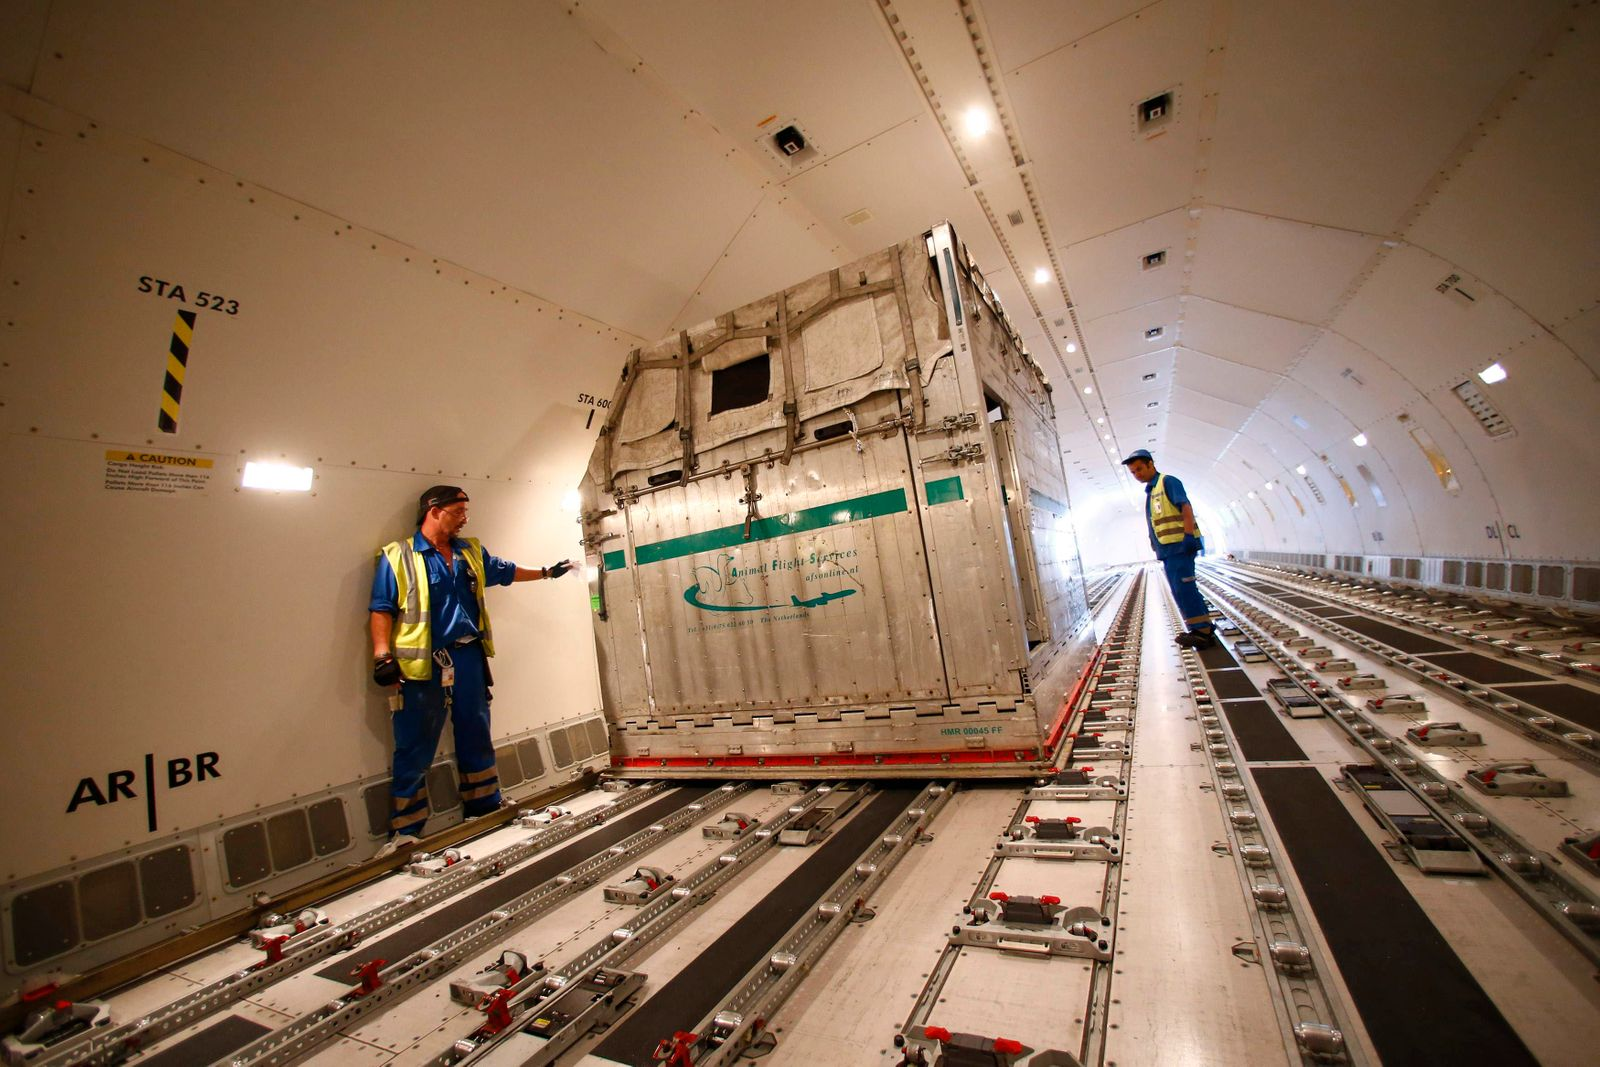 Workers move an air container carrying horses at Fraport airport